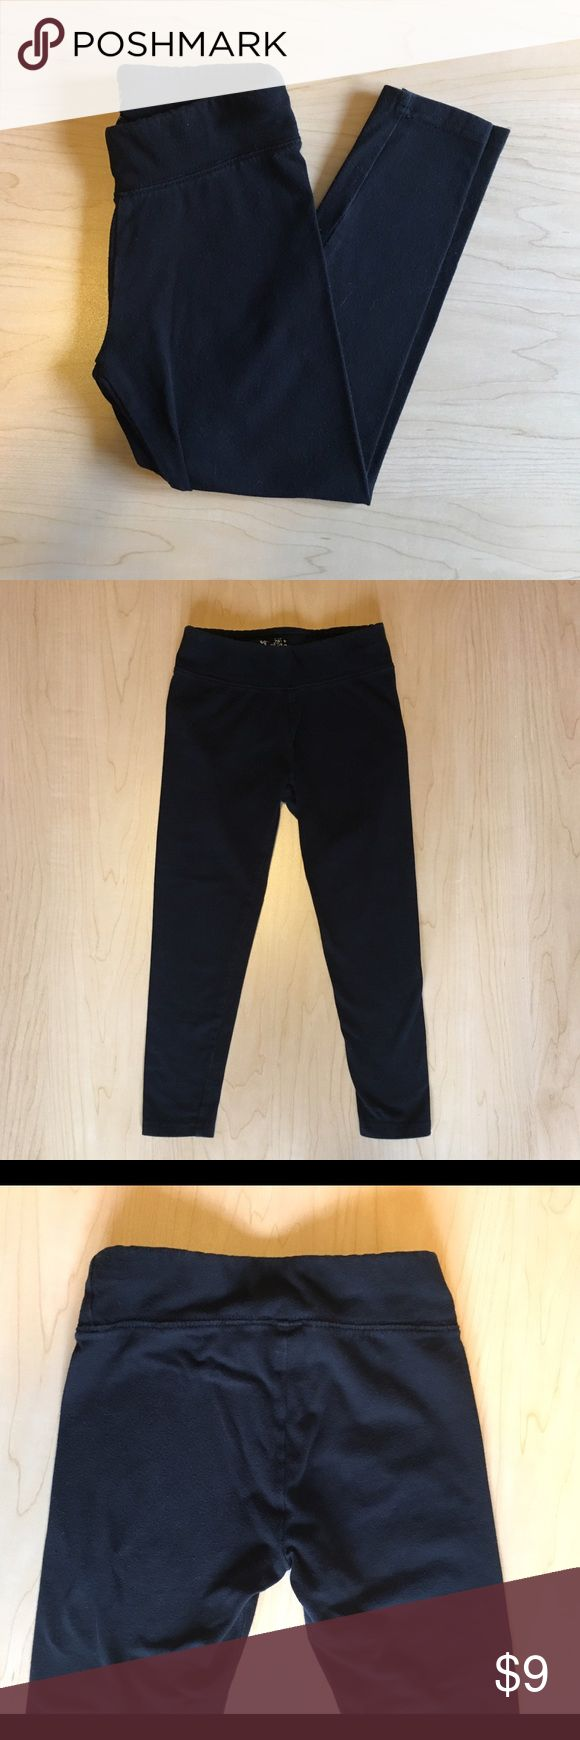 Justice Girls Black Leggings Justice Black Leggings.  Labeled size 7, but run a little small and would also fit a 6.  Good used condition!  Smoke and pet free home. 20% off all 2+ bundles! Justice Bottoms Leggings